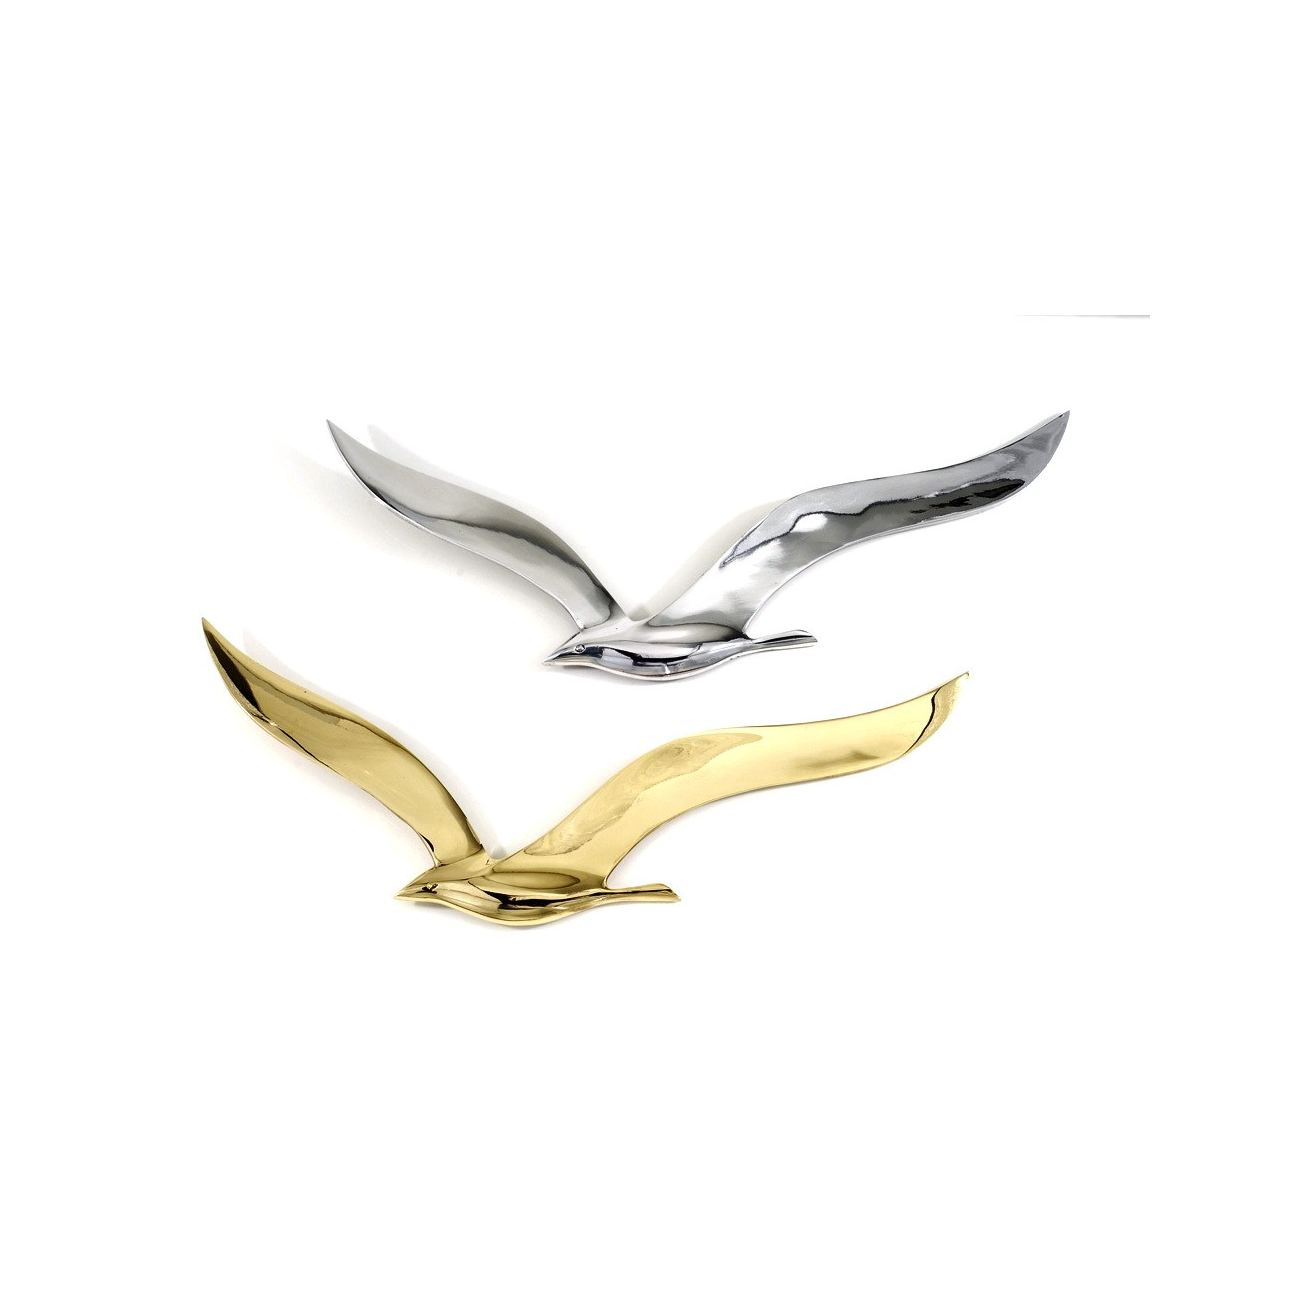 Flying Seagull Bird - Handmade Metal Wall Art Decor - Gold Large 37cm (14.6u0027u0027)  sc 1 st  Elite Crafters & Flying Seagull Bird - Handmade Metal Wall Art Decor - Gold Large ...